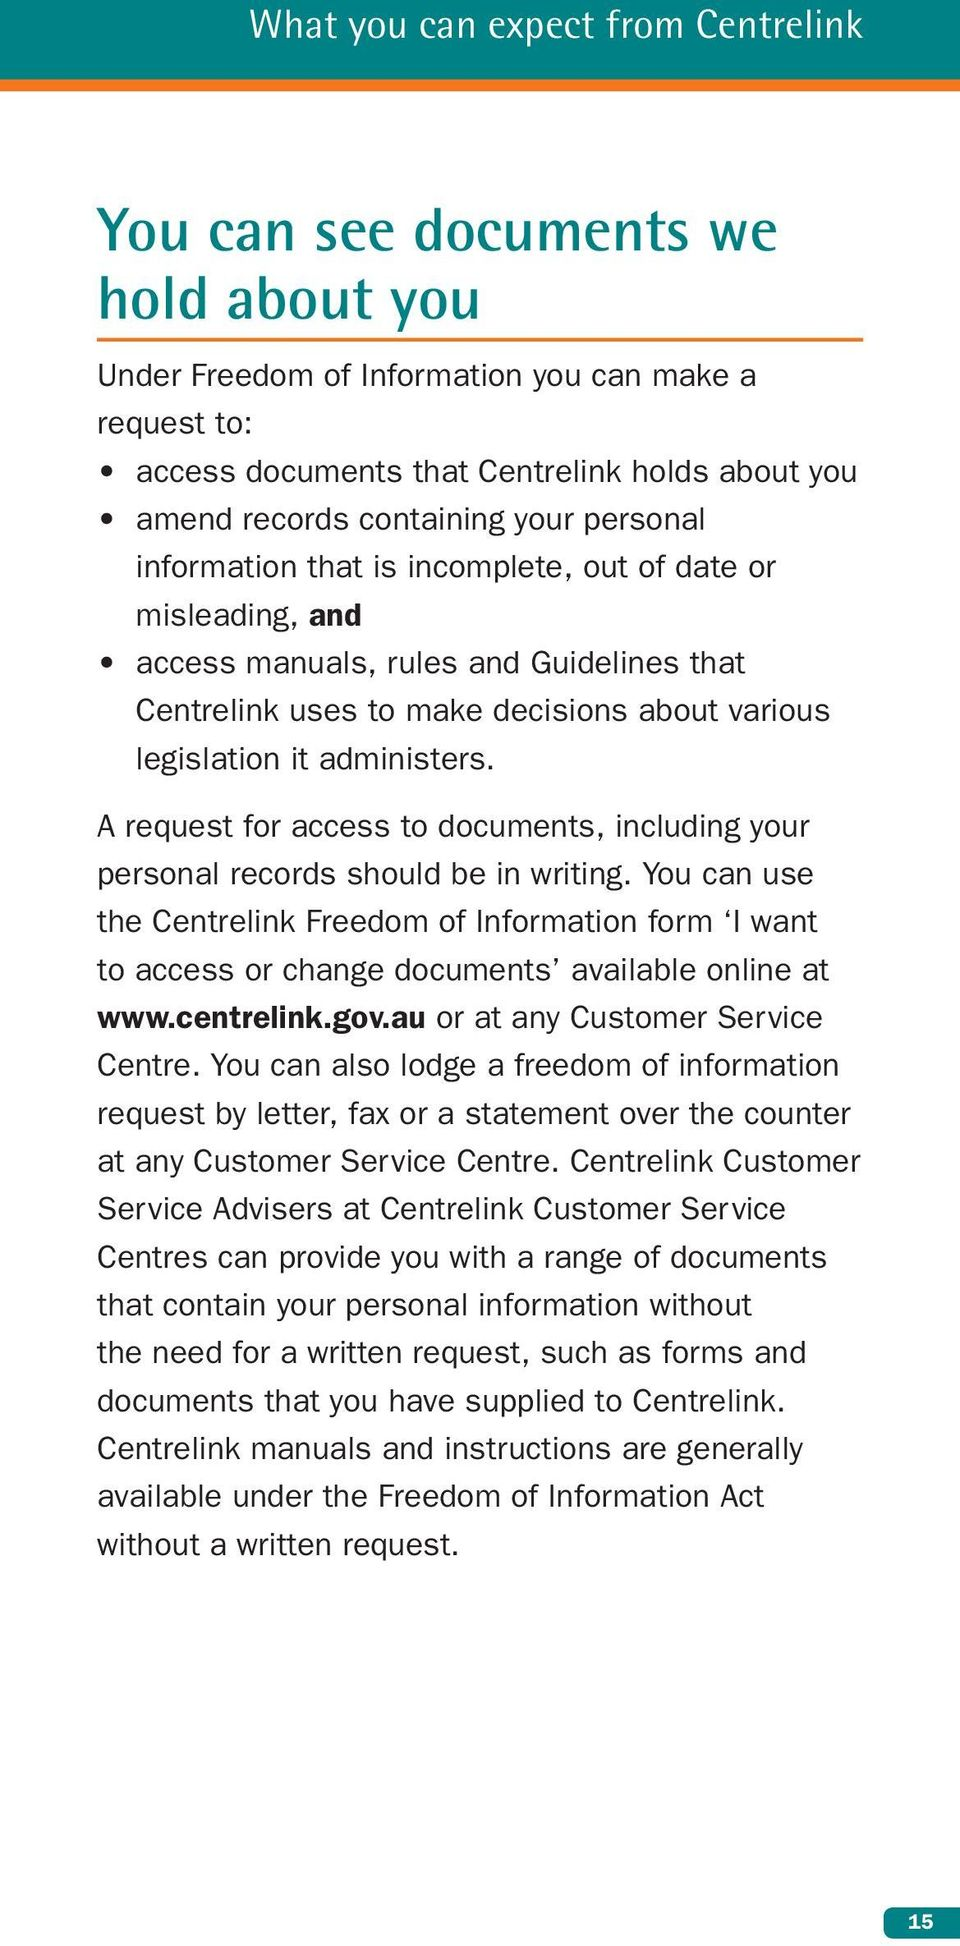 administers. A request for access to documents, including your personal records should be in writing.